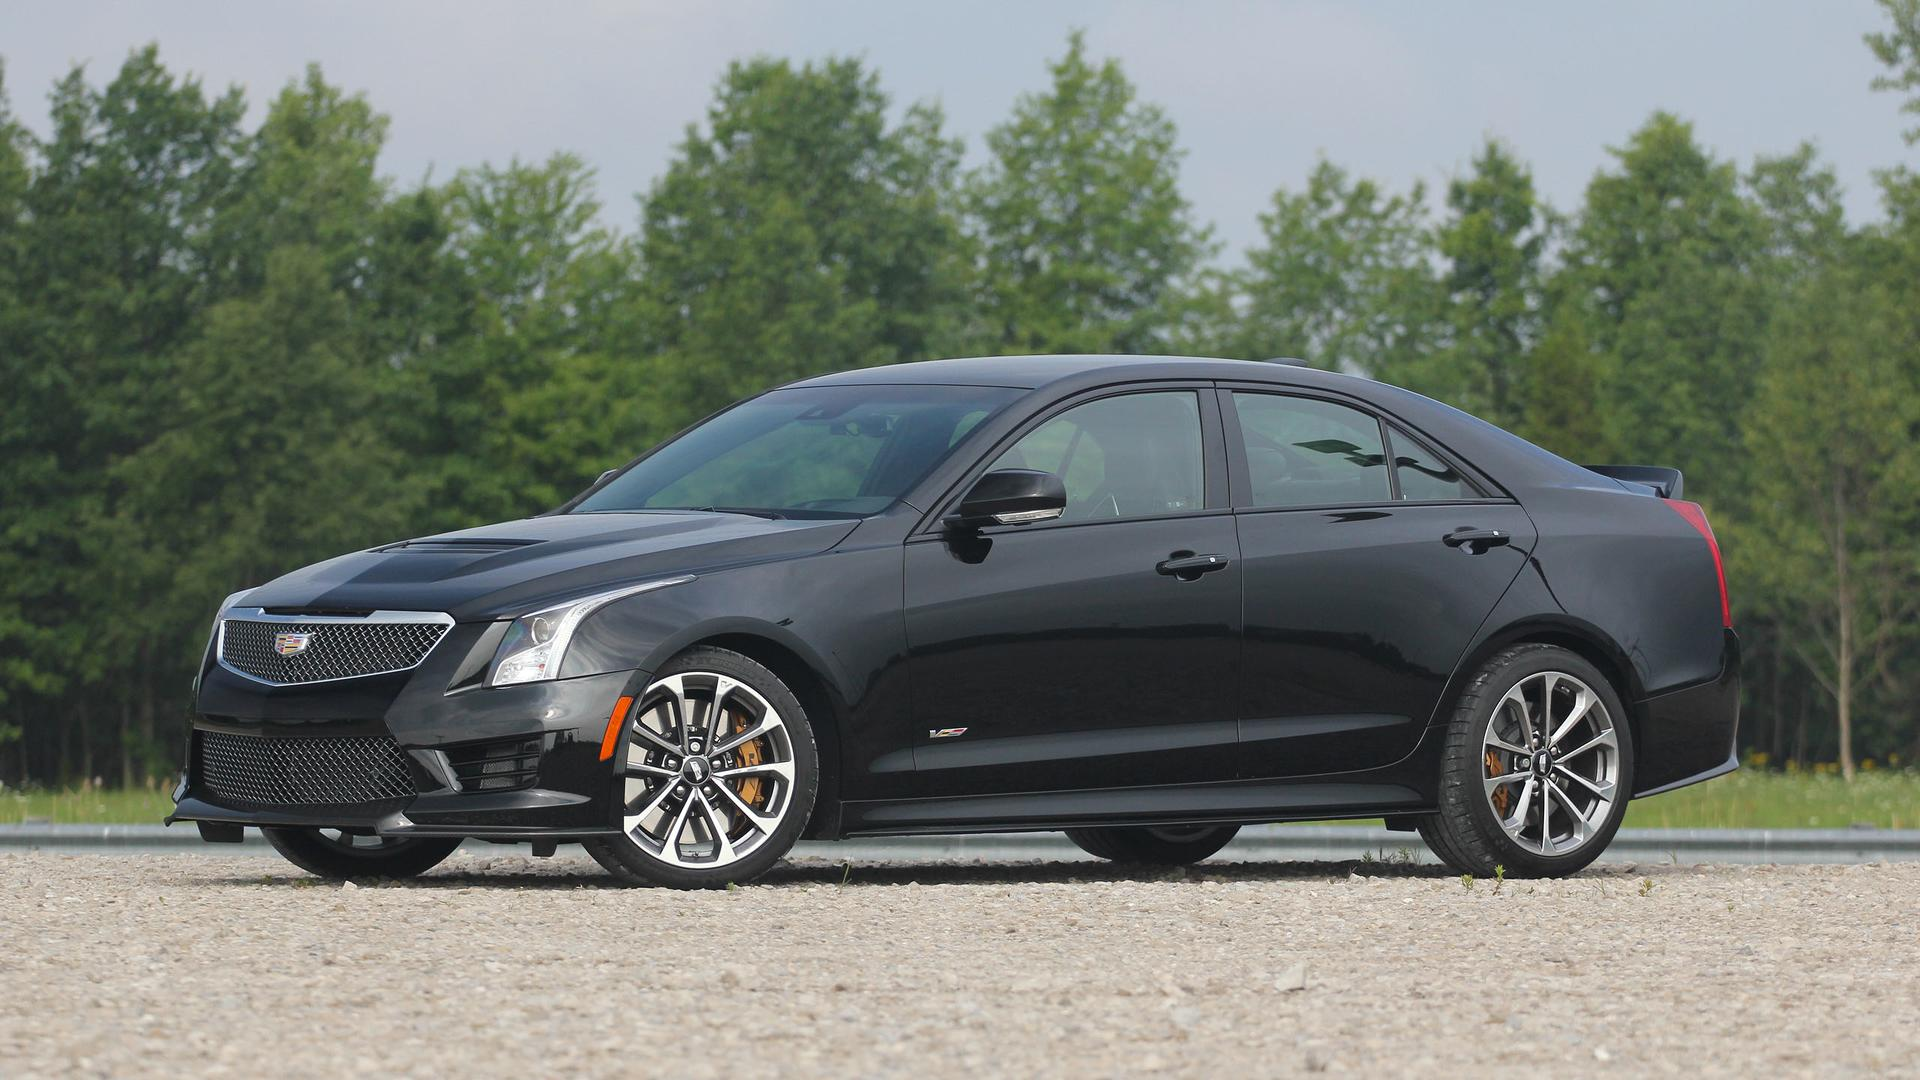 Cadillac Ats Sedan >> More Proof The Cadillac Ats Sedan Could Be Getting The Axe